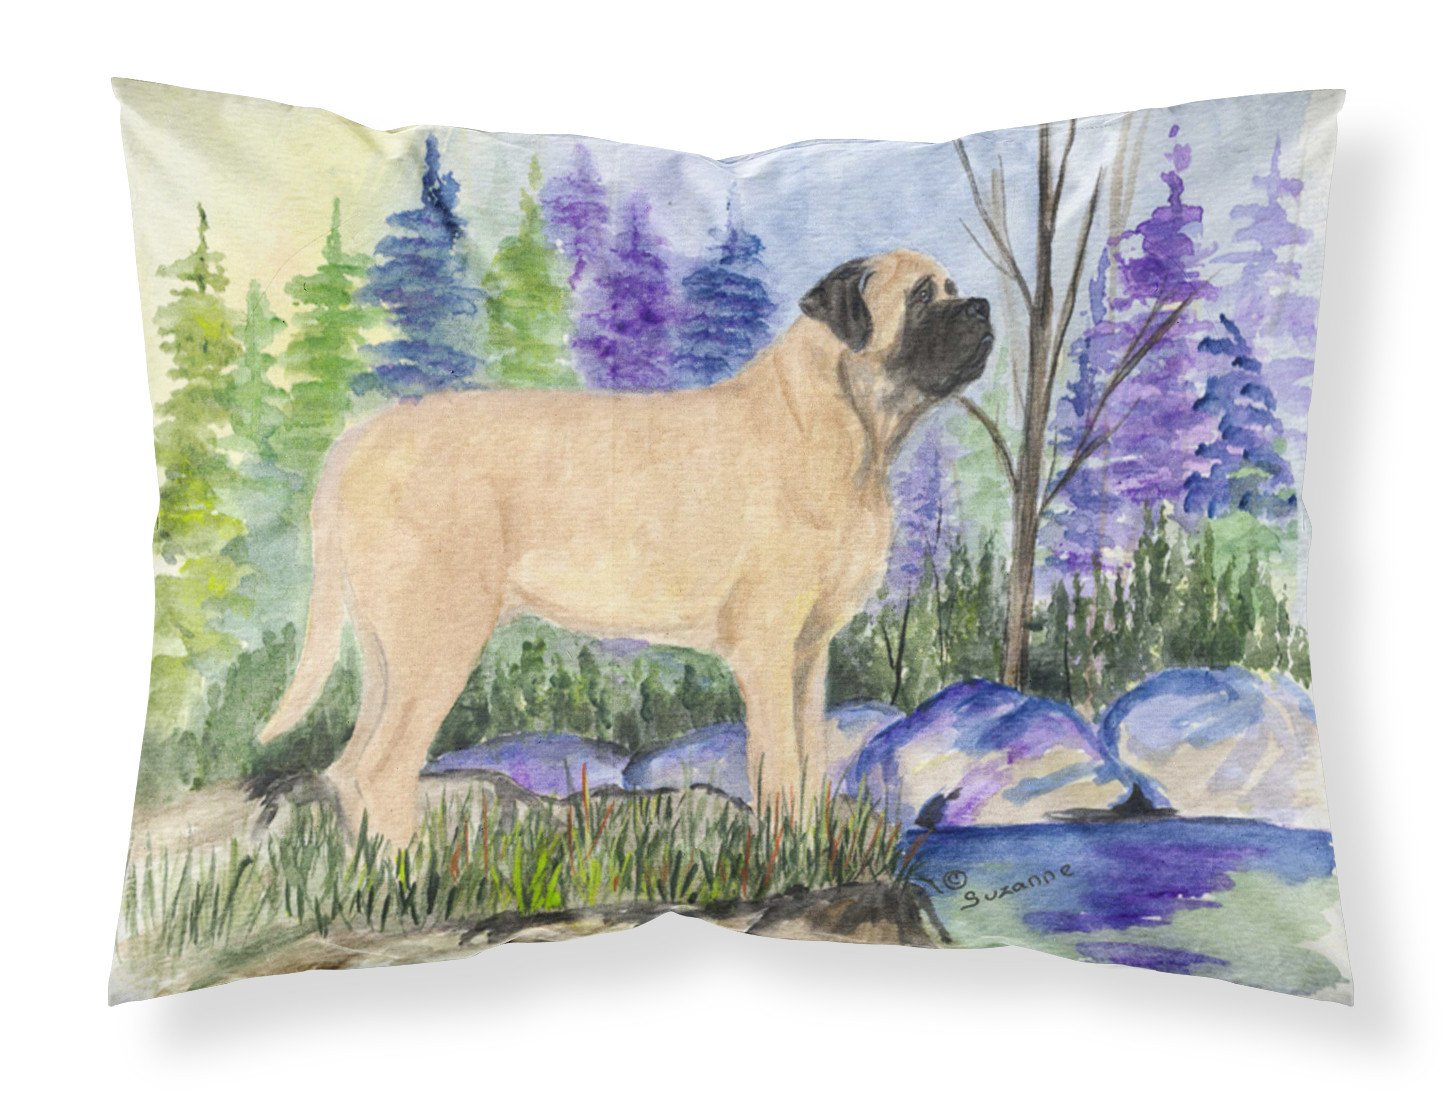 Mastiff Moisture wicking Fabric standard pillowcase by Caroline's Treasures